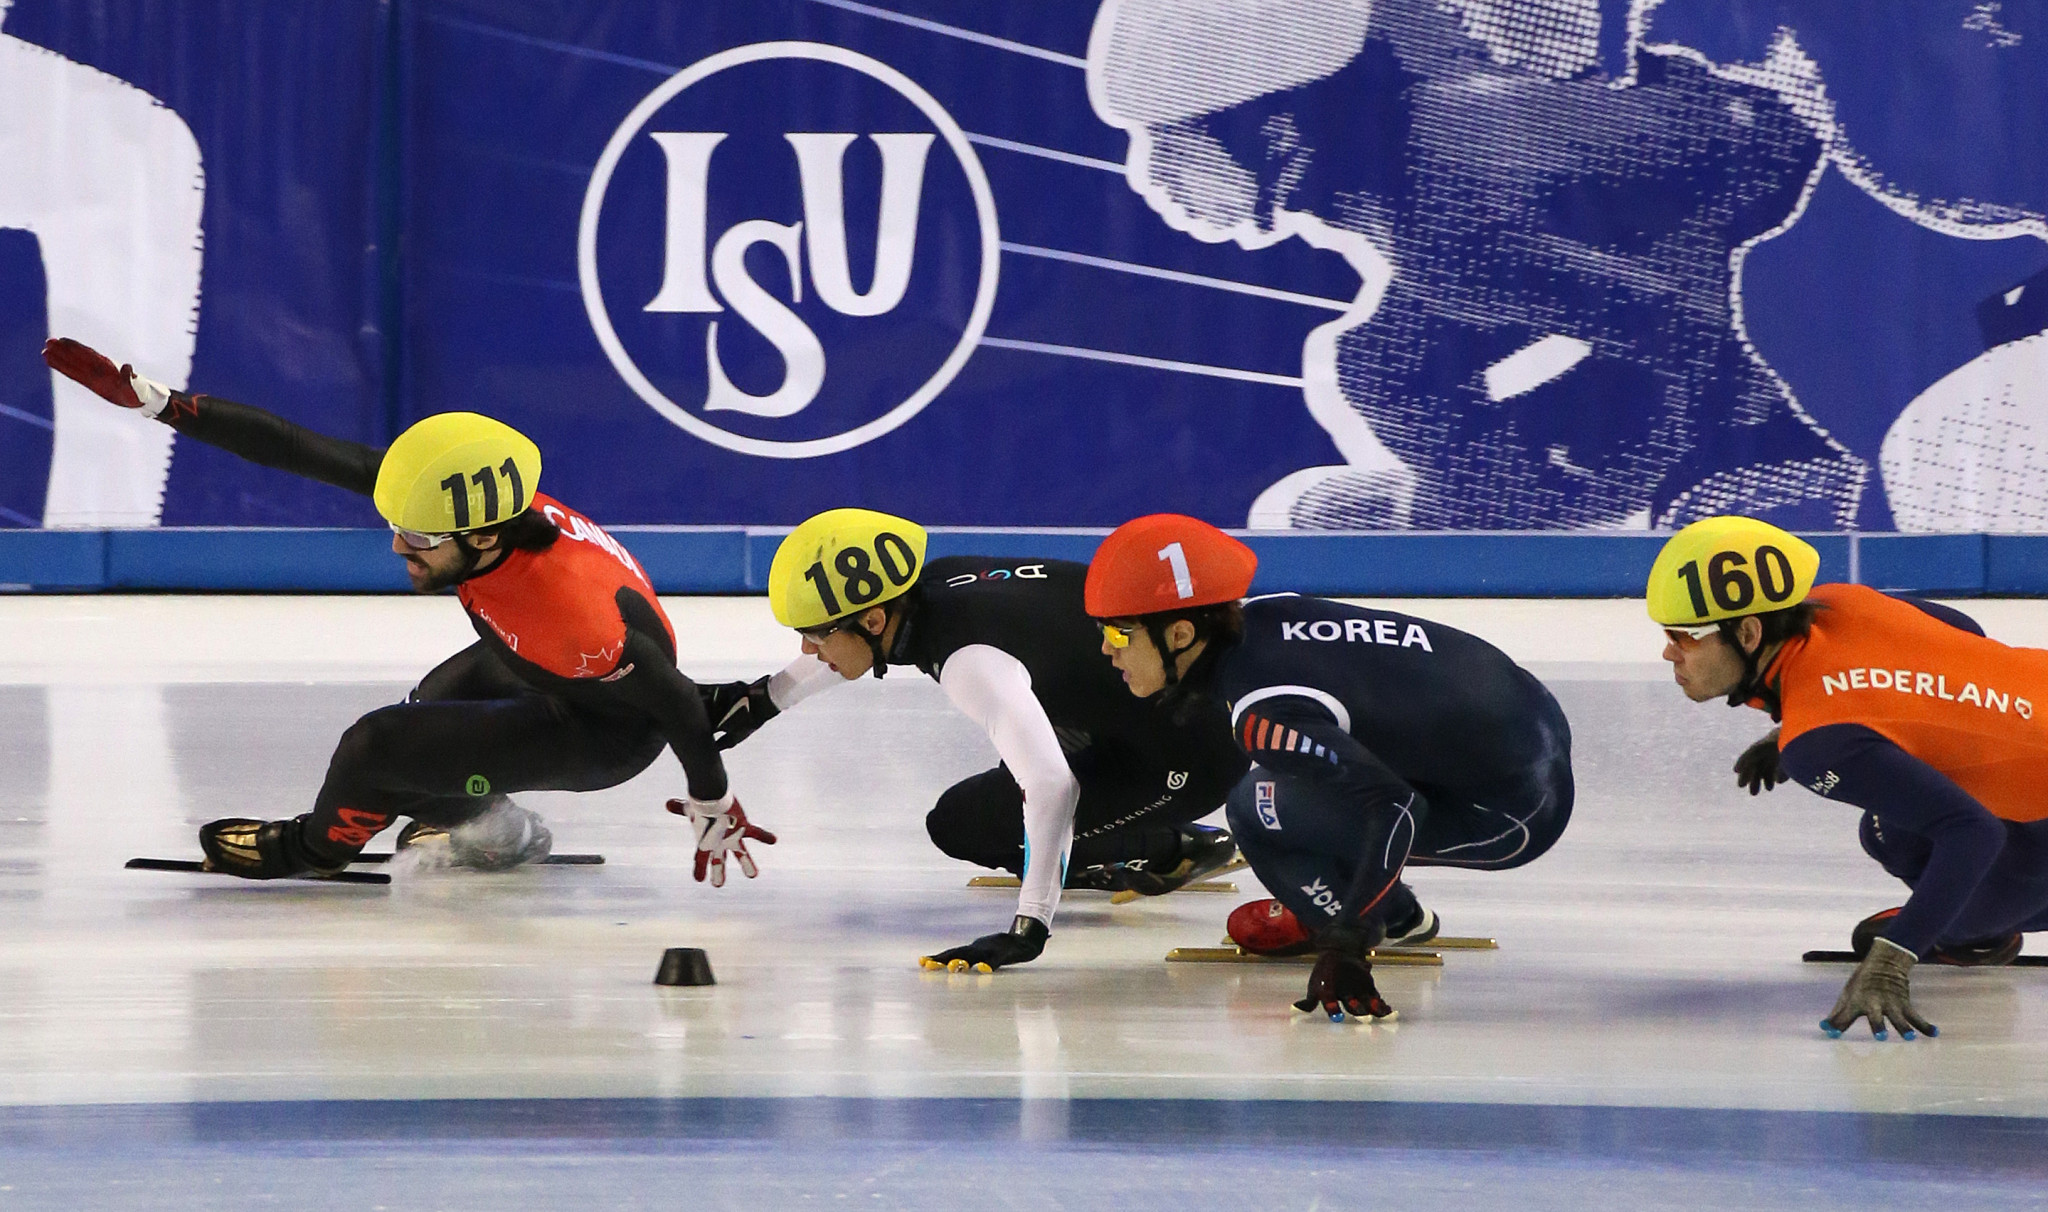 Debrecen also staged the 2013 World Short Track Championships ©Getty Images